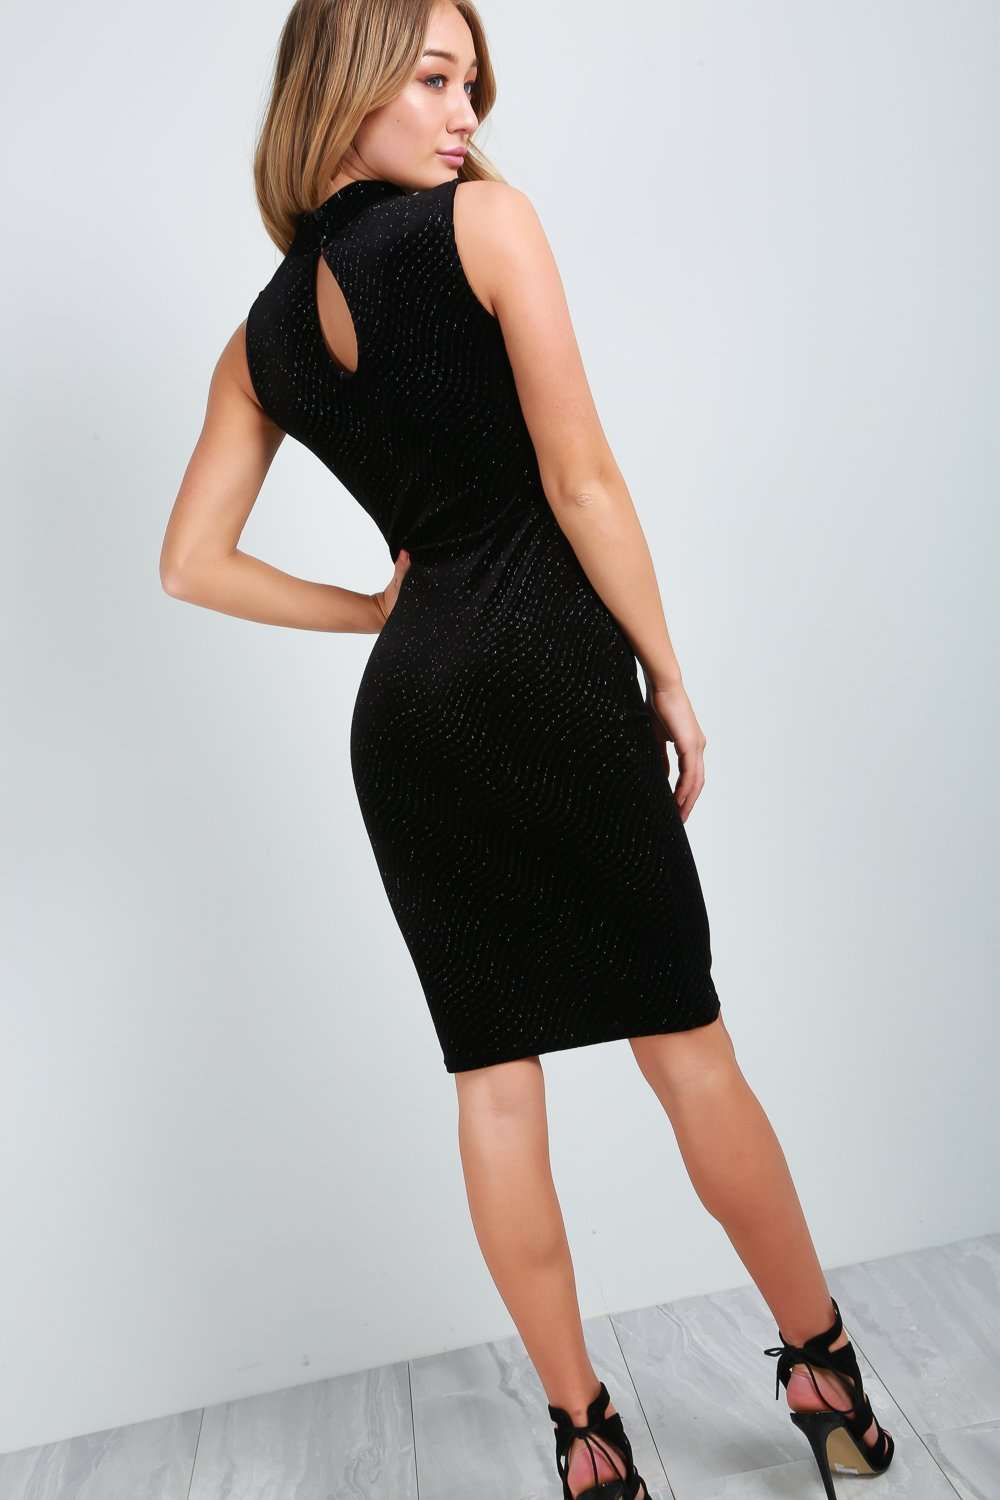 Lacie High Neck Black Velvet Midi Bodycon Dress - bejealous-com